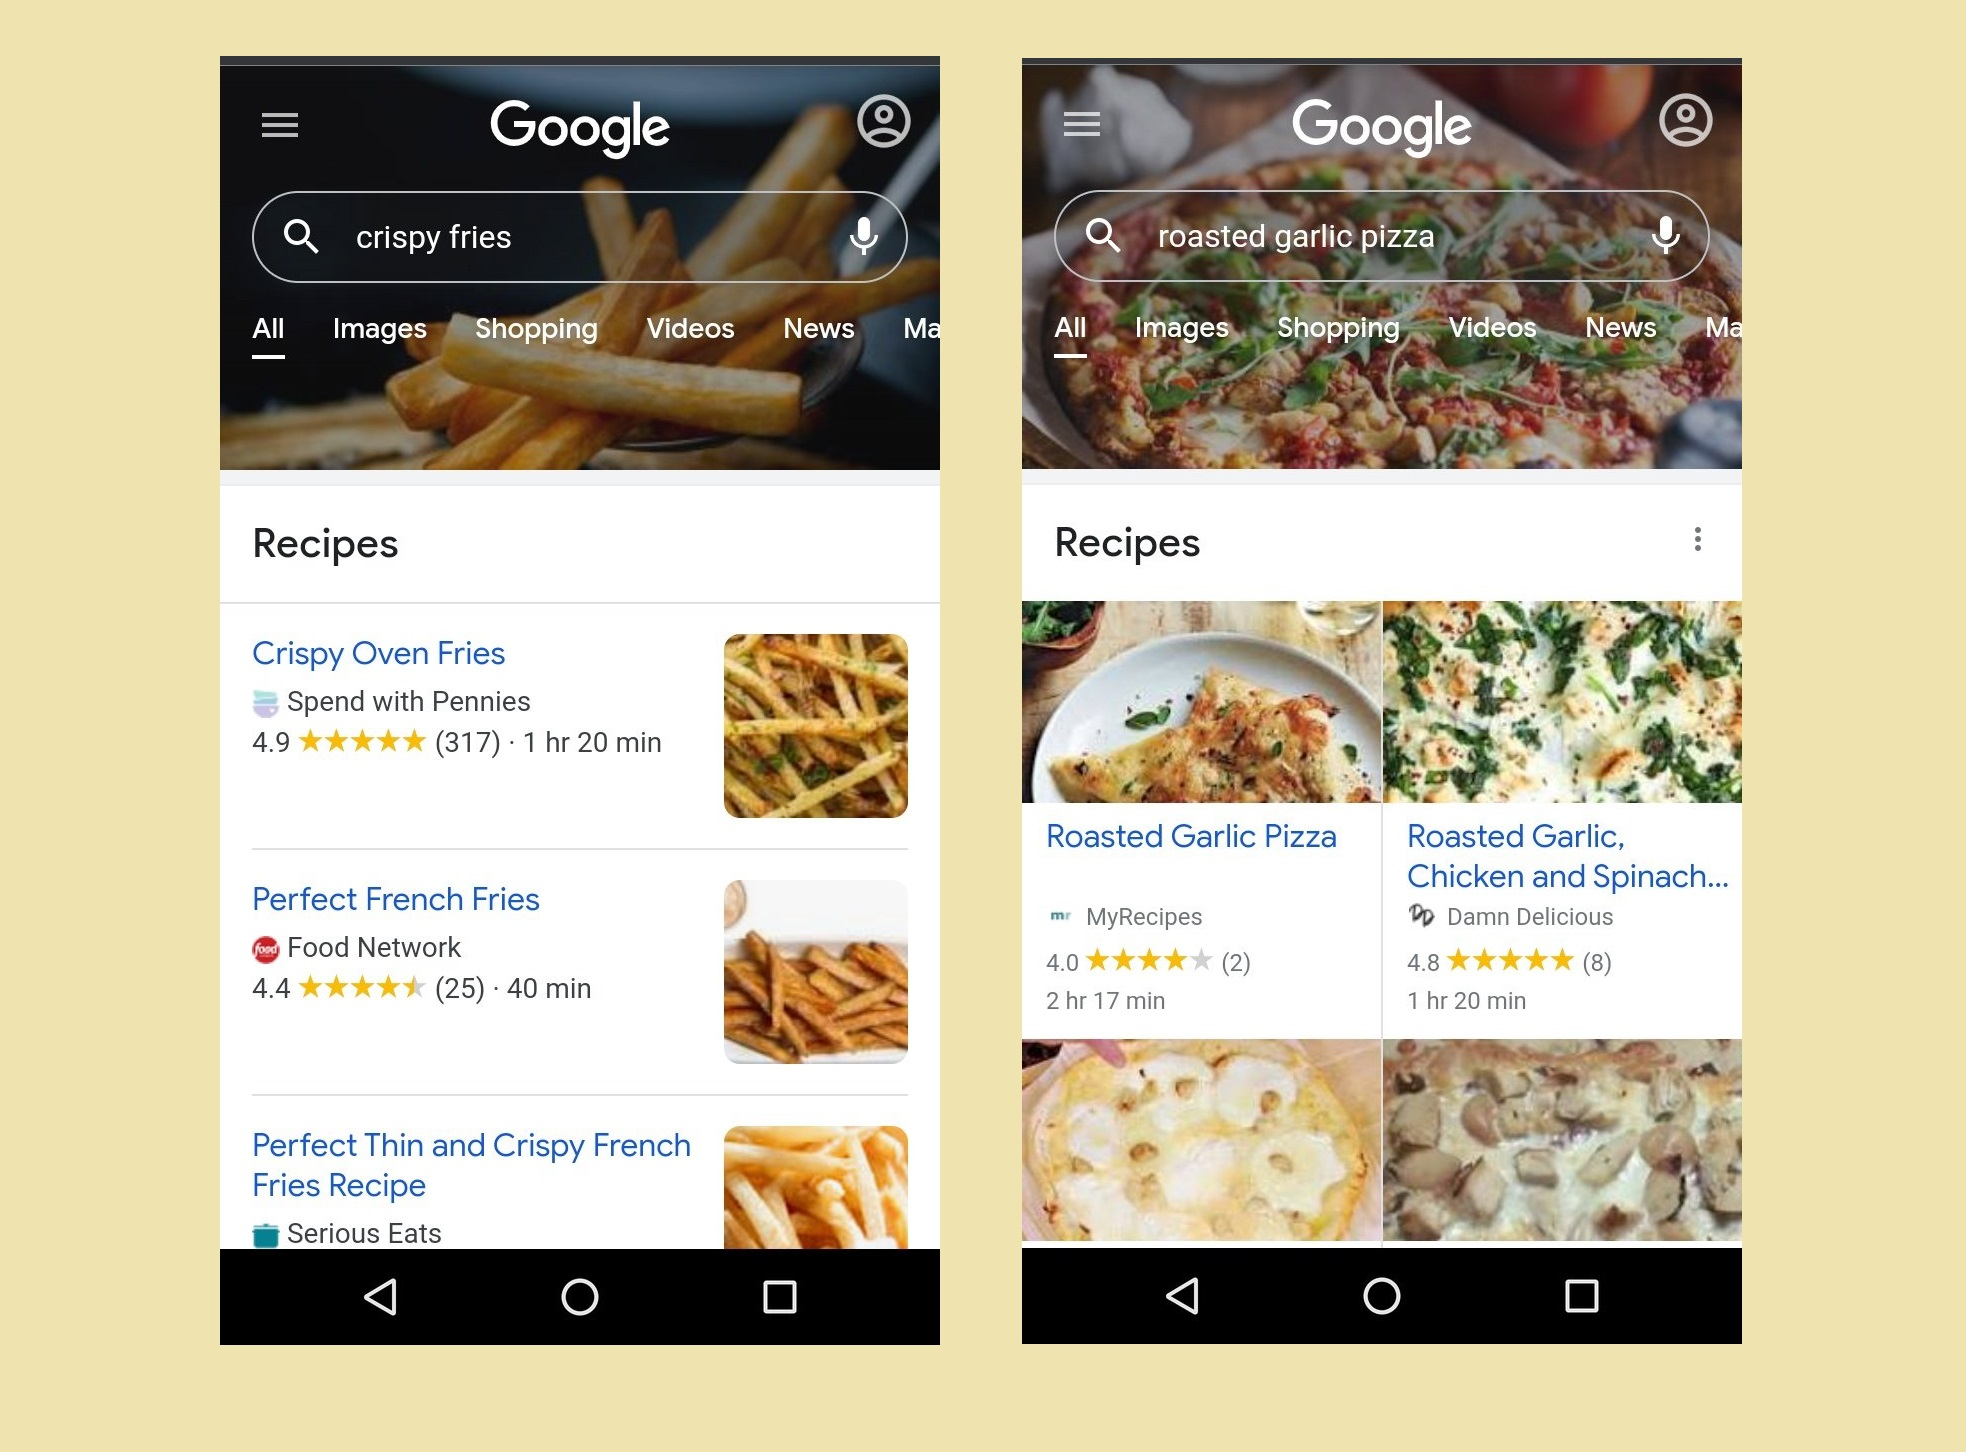 Google is experimenting with custom graphic headers for Mobile Search box based on users searched terms